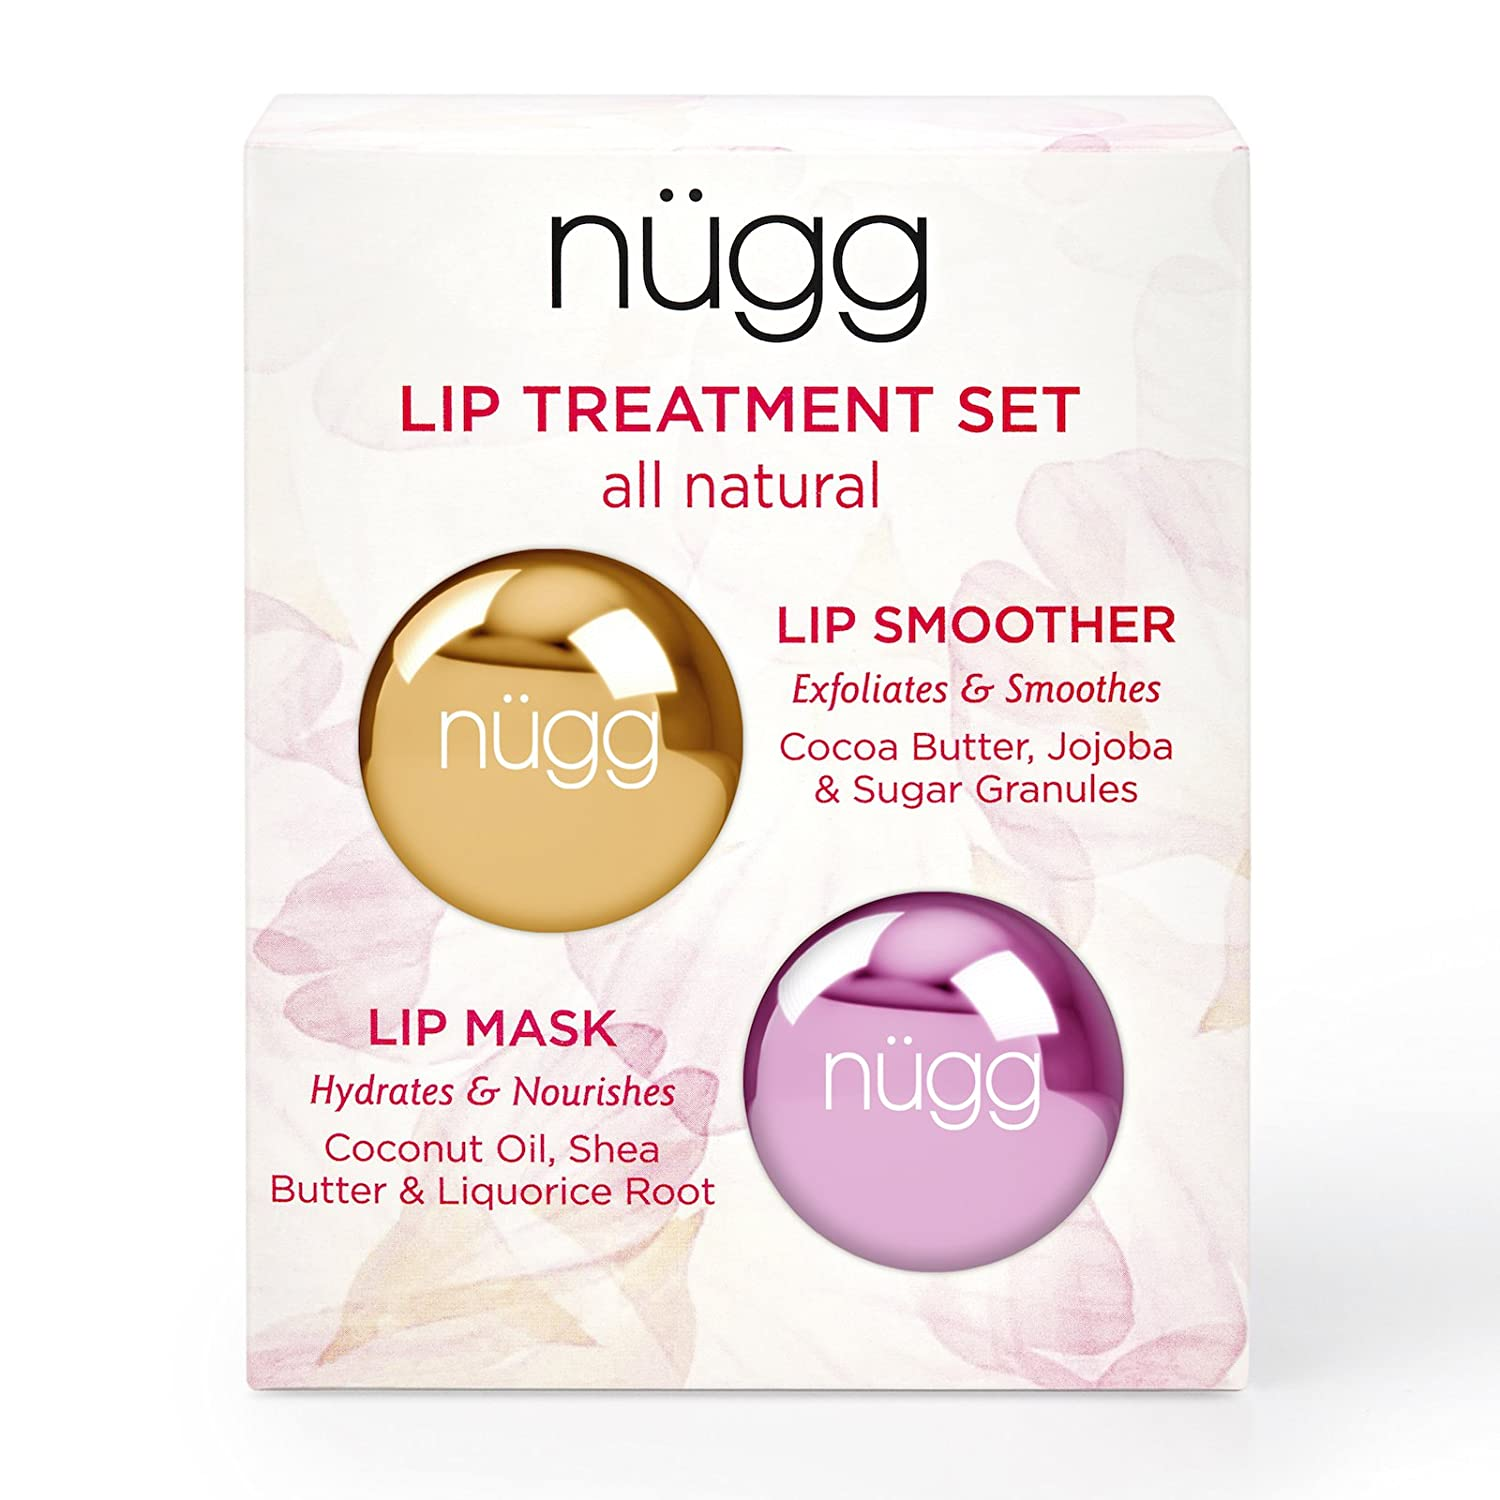 nugg nügg Lip Care Treatment Set for Dry Chapped Lips; Includes All Natural and Vegan Exfoliating Lip Scrub and Moisturizing Lip Mask; 2 x 7g (2 x 0.24 oz)